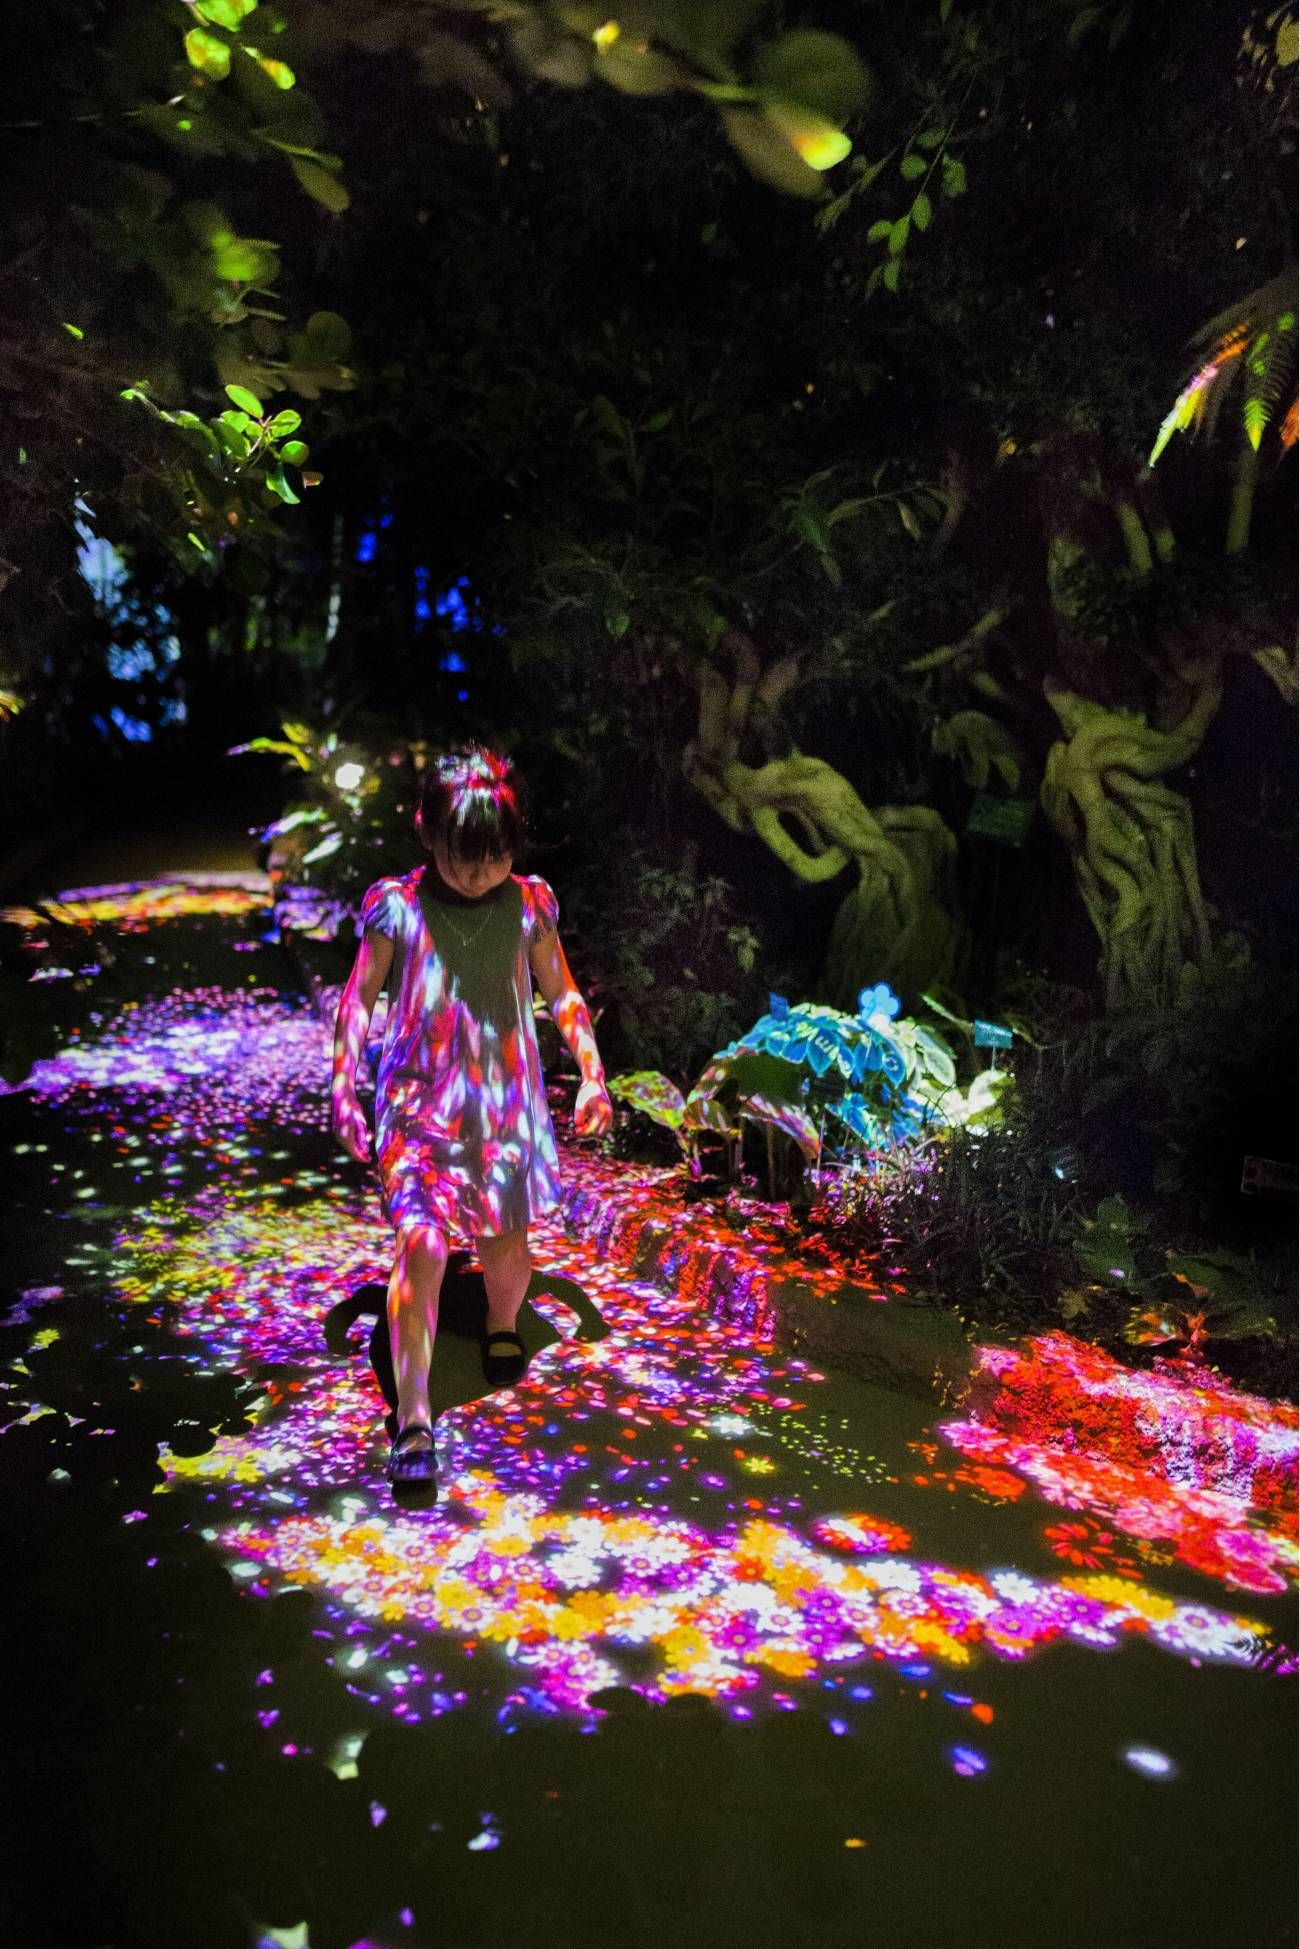 Living Things Of Flowers Symbiotic Lives In The Botanical Garden Teamlab チームラボ Motion Graphics Inspiration Avatar Theme Botanical Gardens